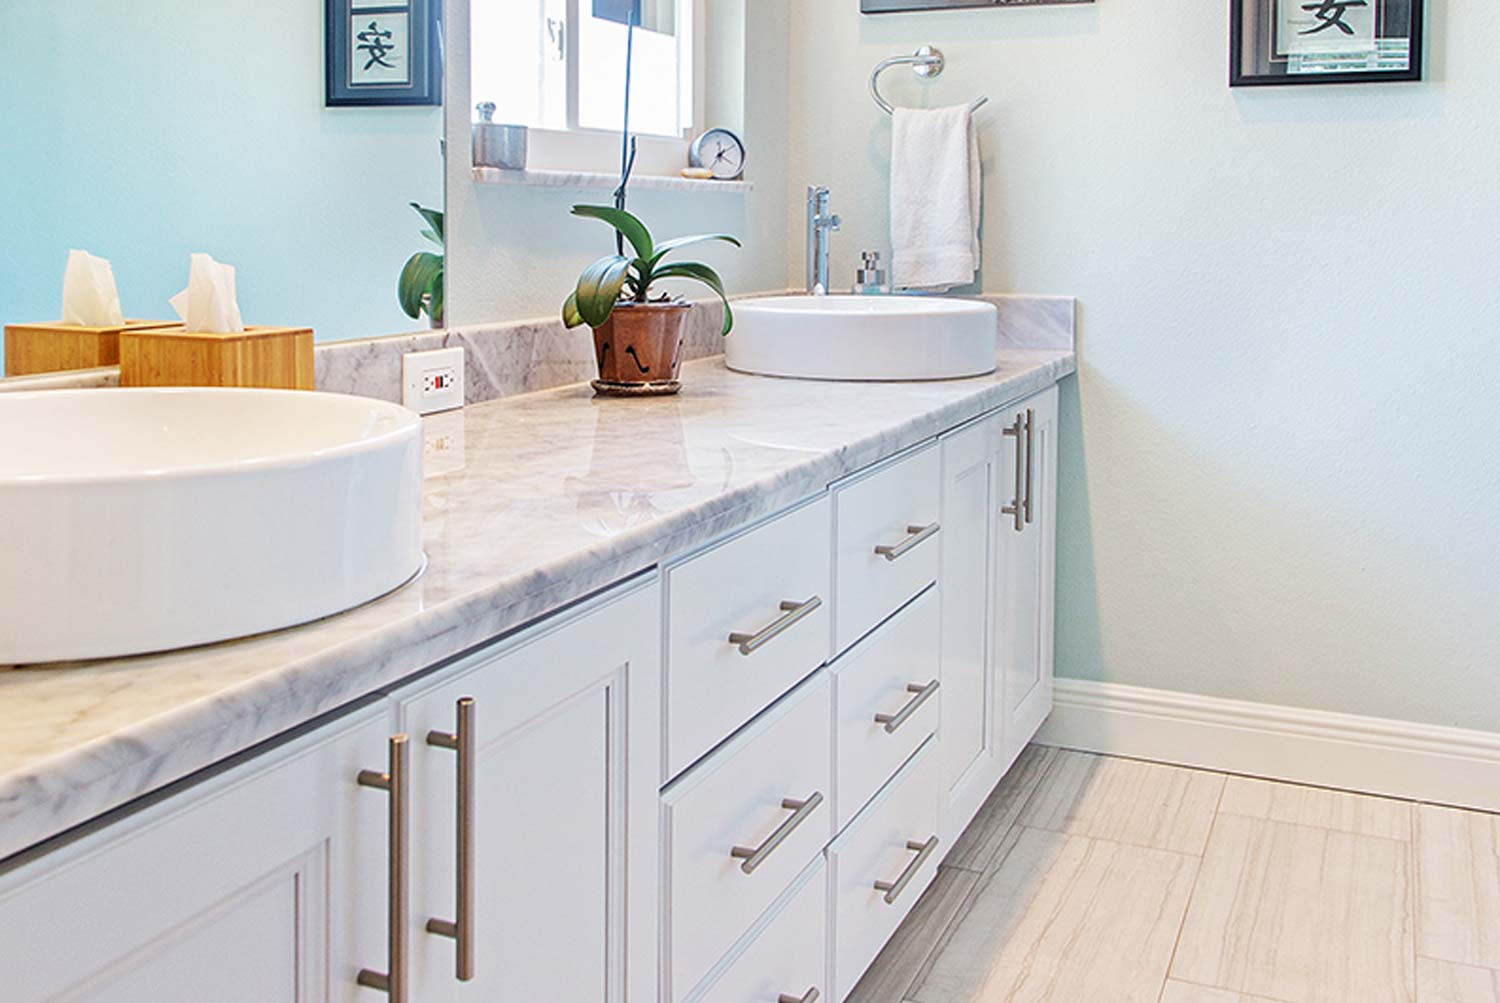 Bathroom Renovation in Palm Harbor Florida by Golden Construction Services